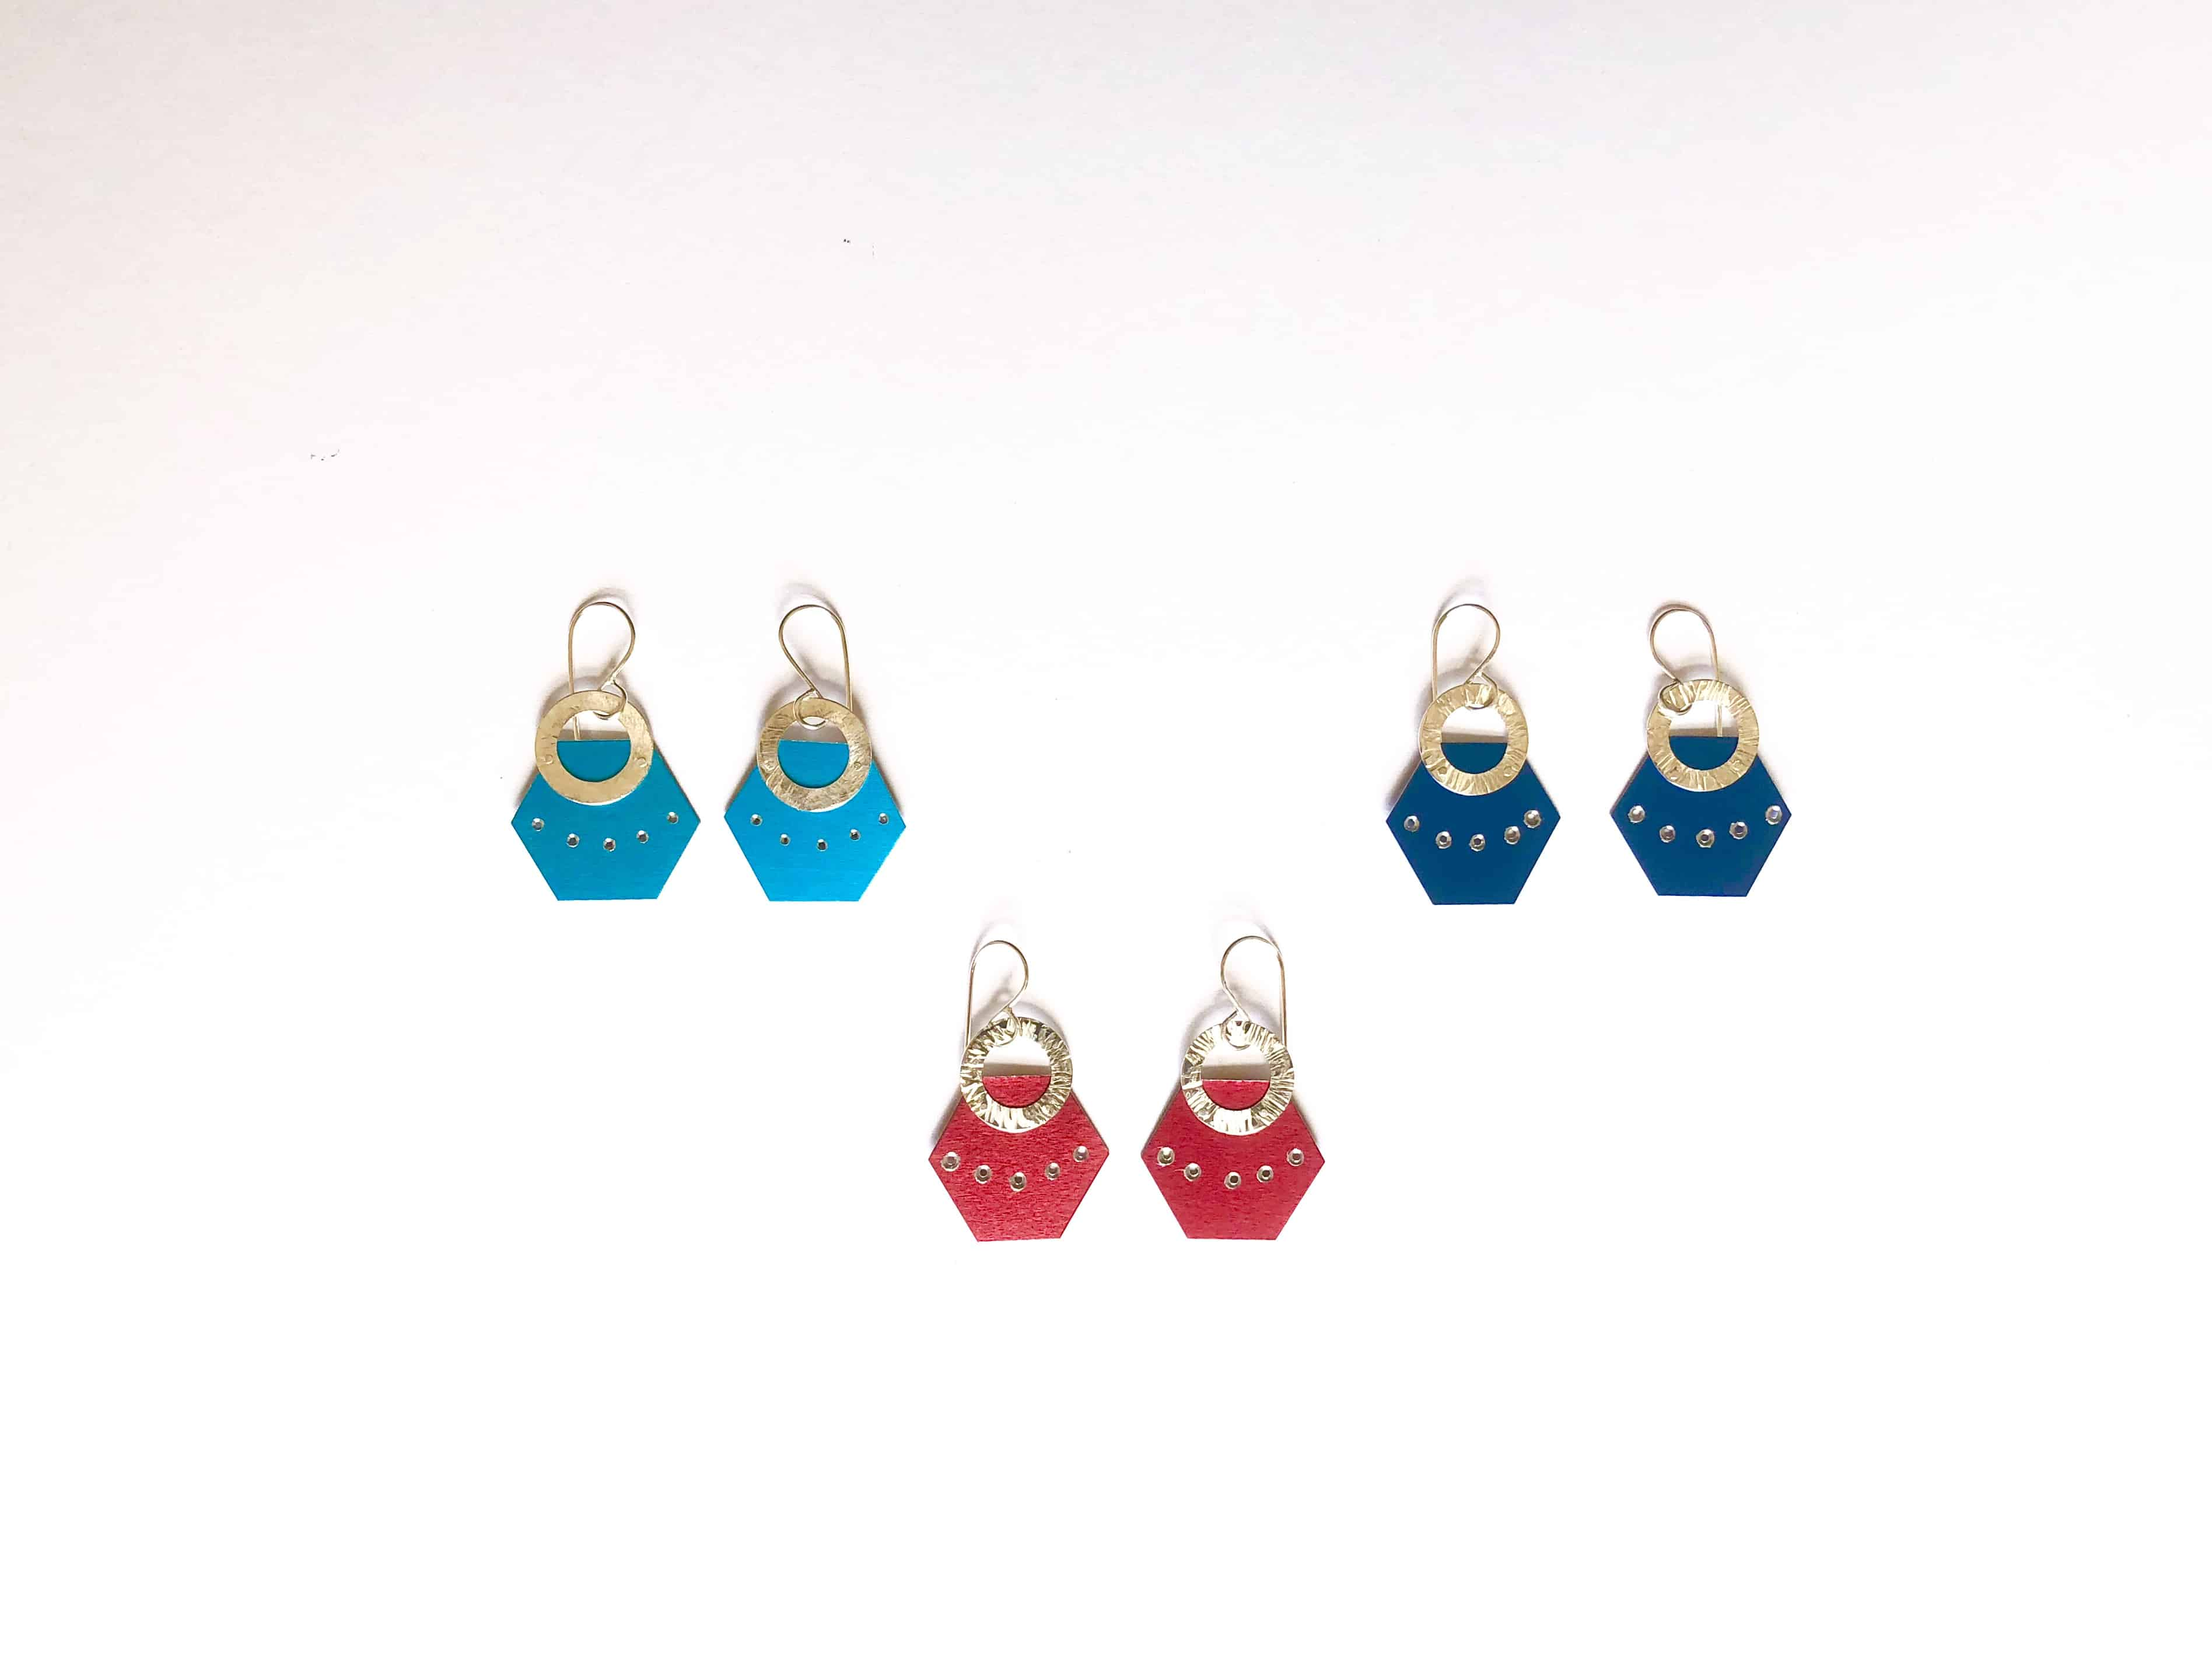 Meredith-Hoult-aluminium-small-earrings-blue-and-red-2